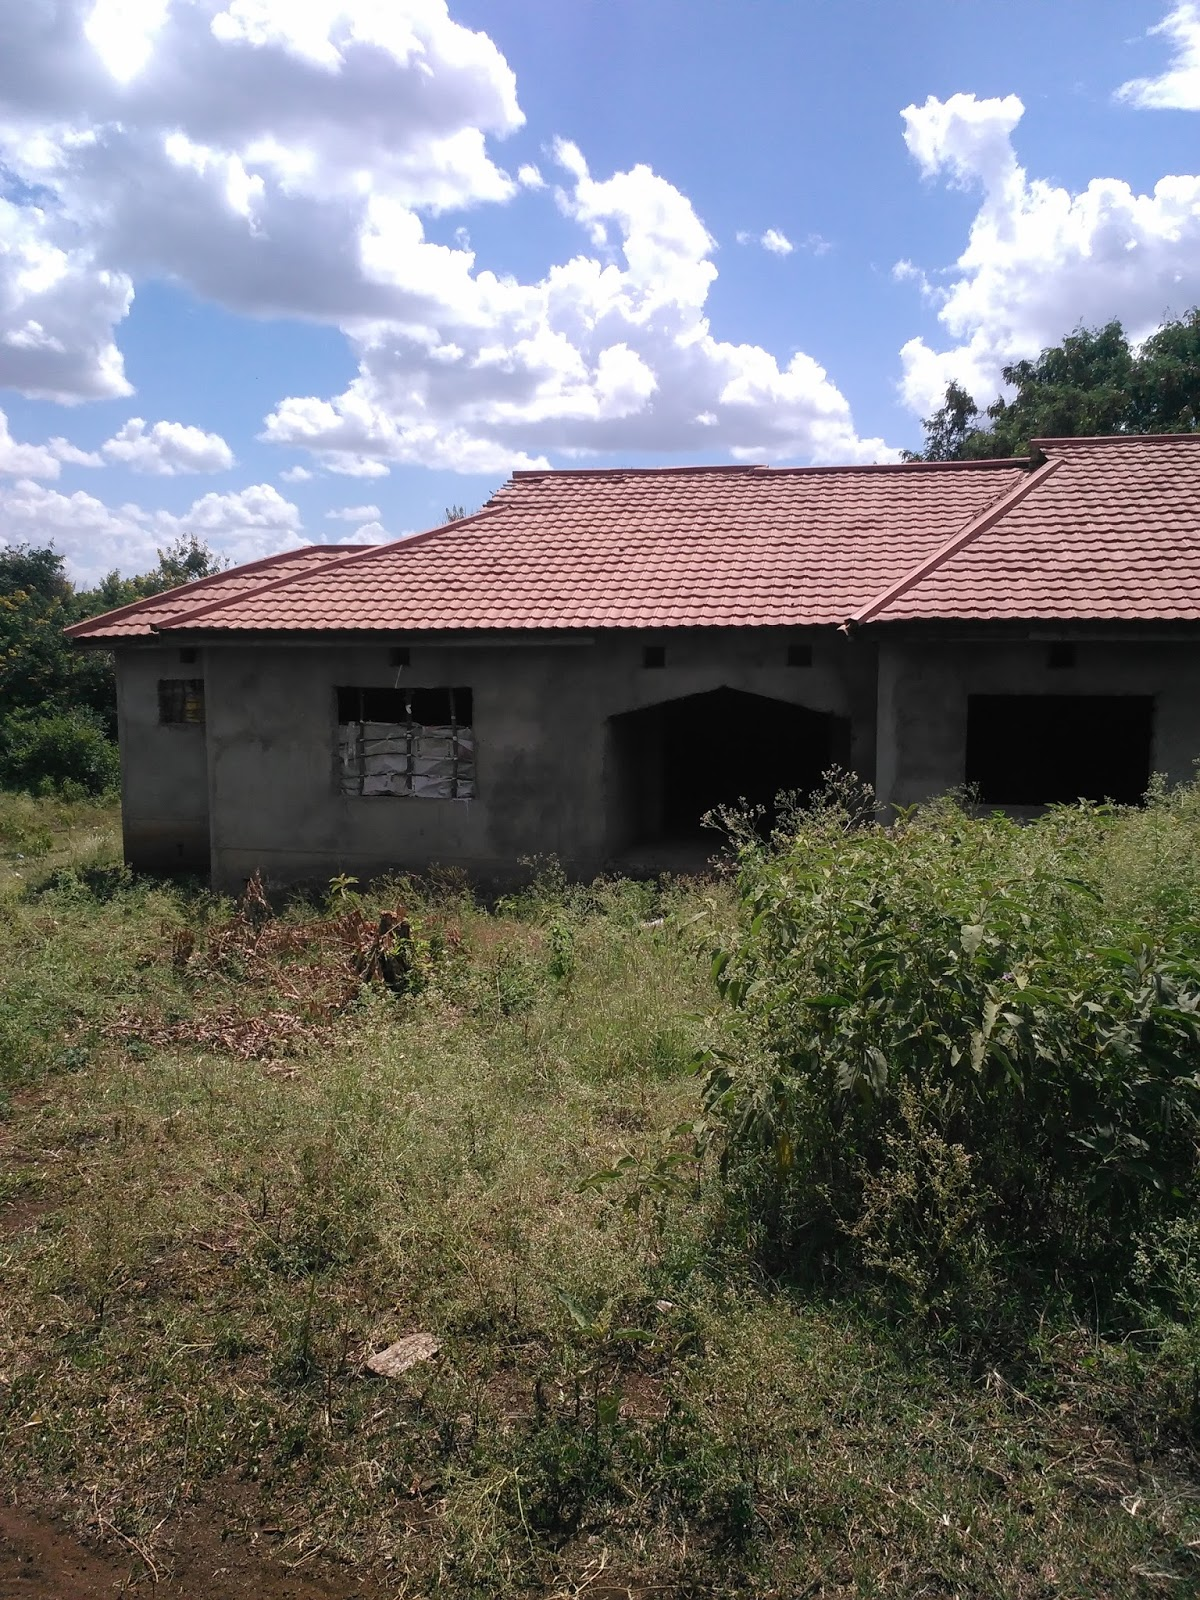 You Can Buy This House And Complete Building According To Your Interior Design Also Modify Outside Look Hence Finish Construction